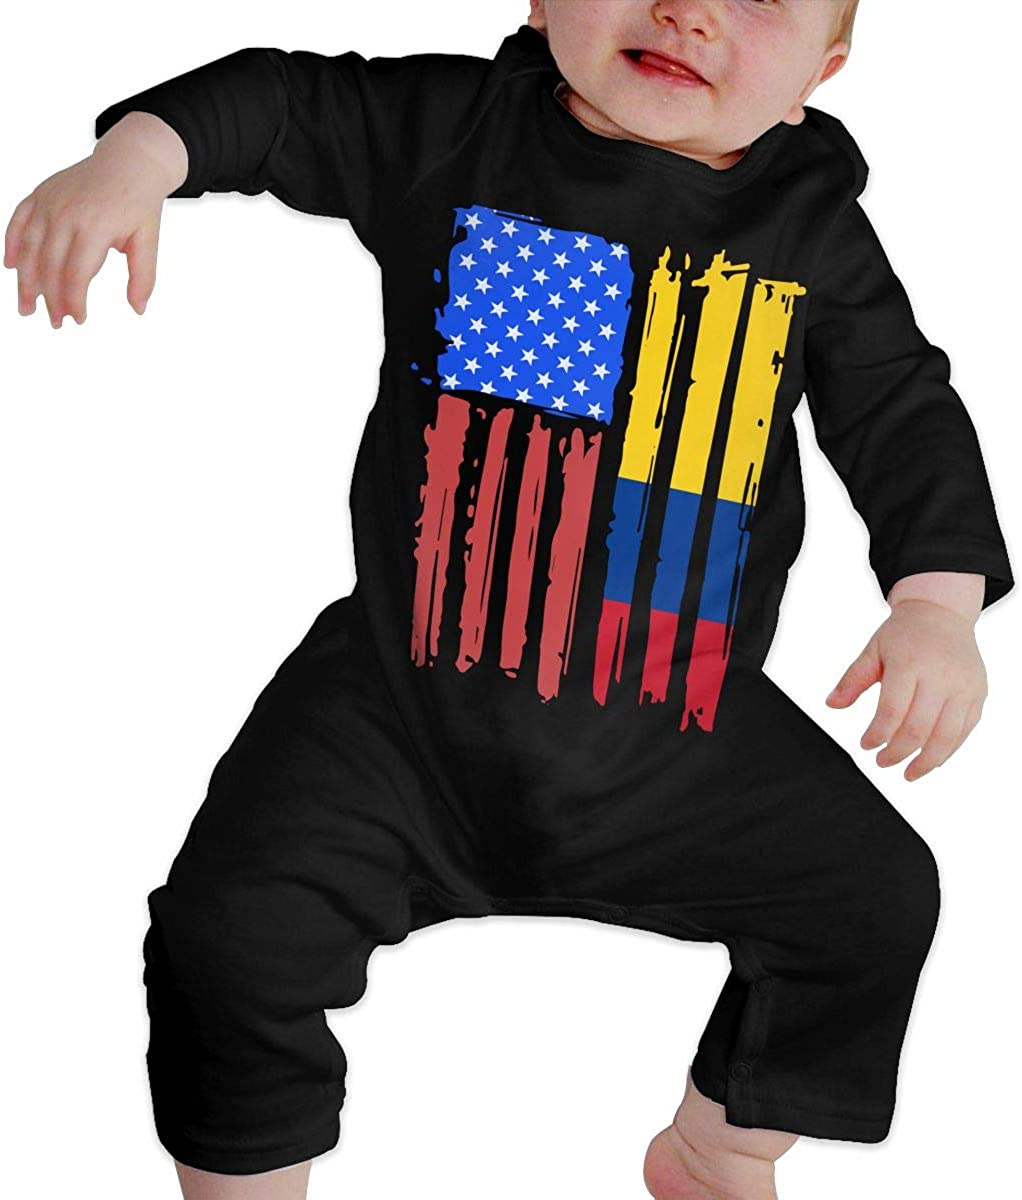 American Half Colombia Flag Organic One-Piece Kid Pajamas Clothes BKNGDG8Q Newborn Baby Boy Girl Romper Jumpsuit